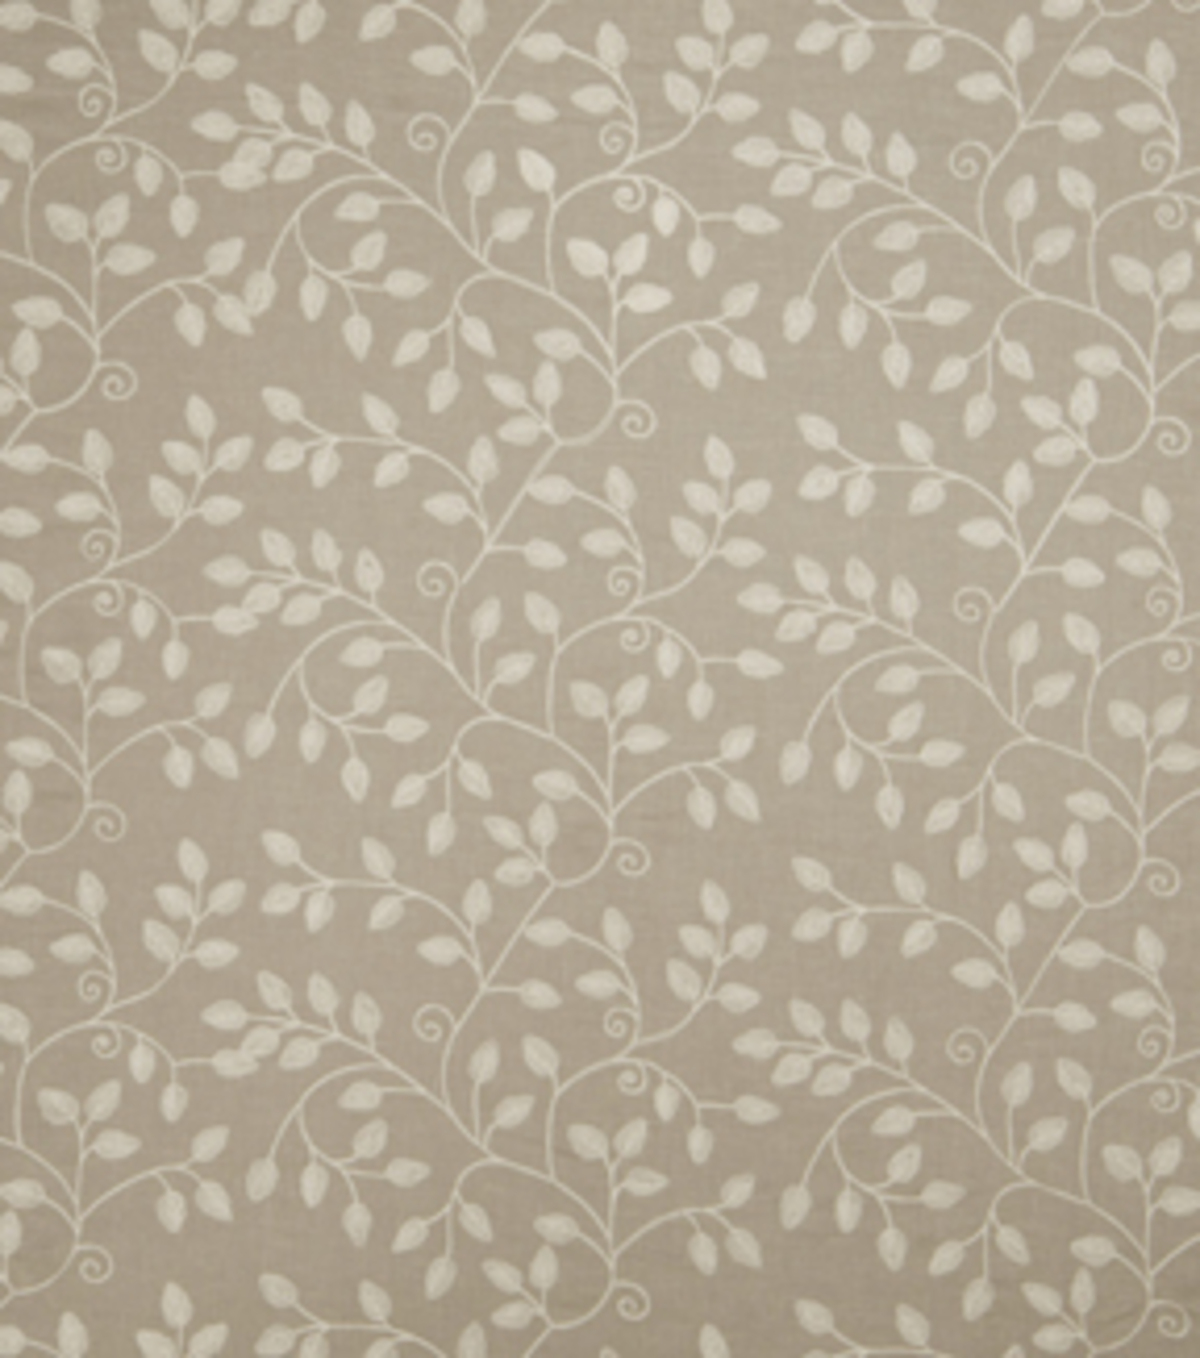 "Home Decor 8""x8"" Fabric Swatch-Eaton Square Haggard Flax"